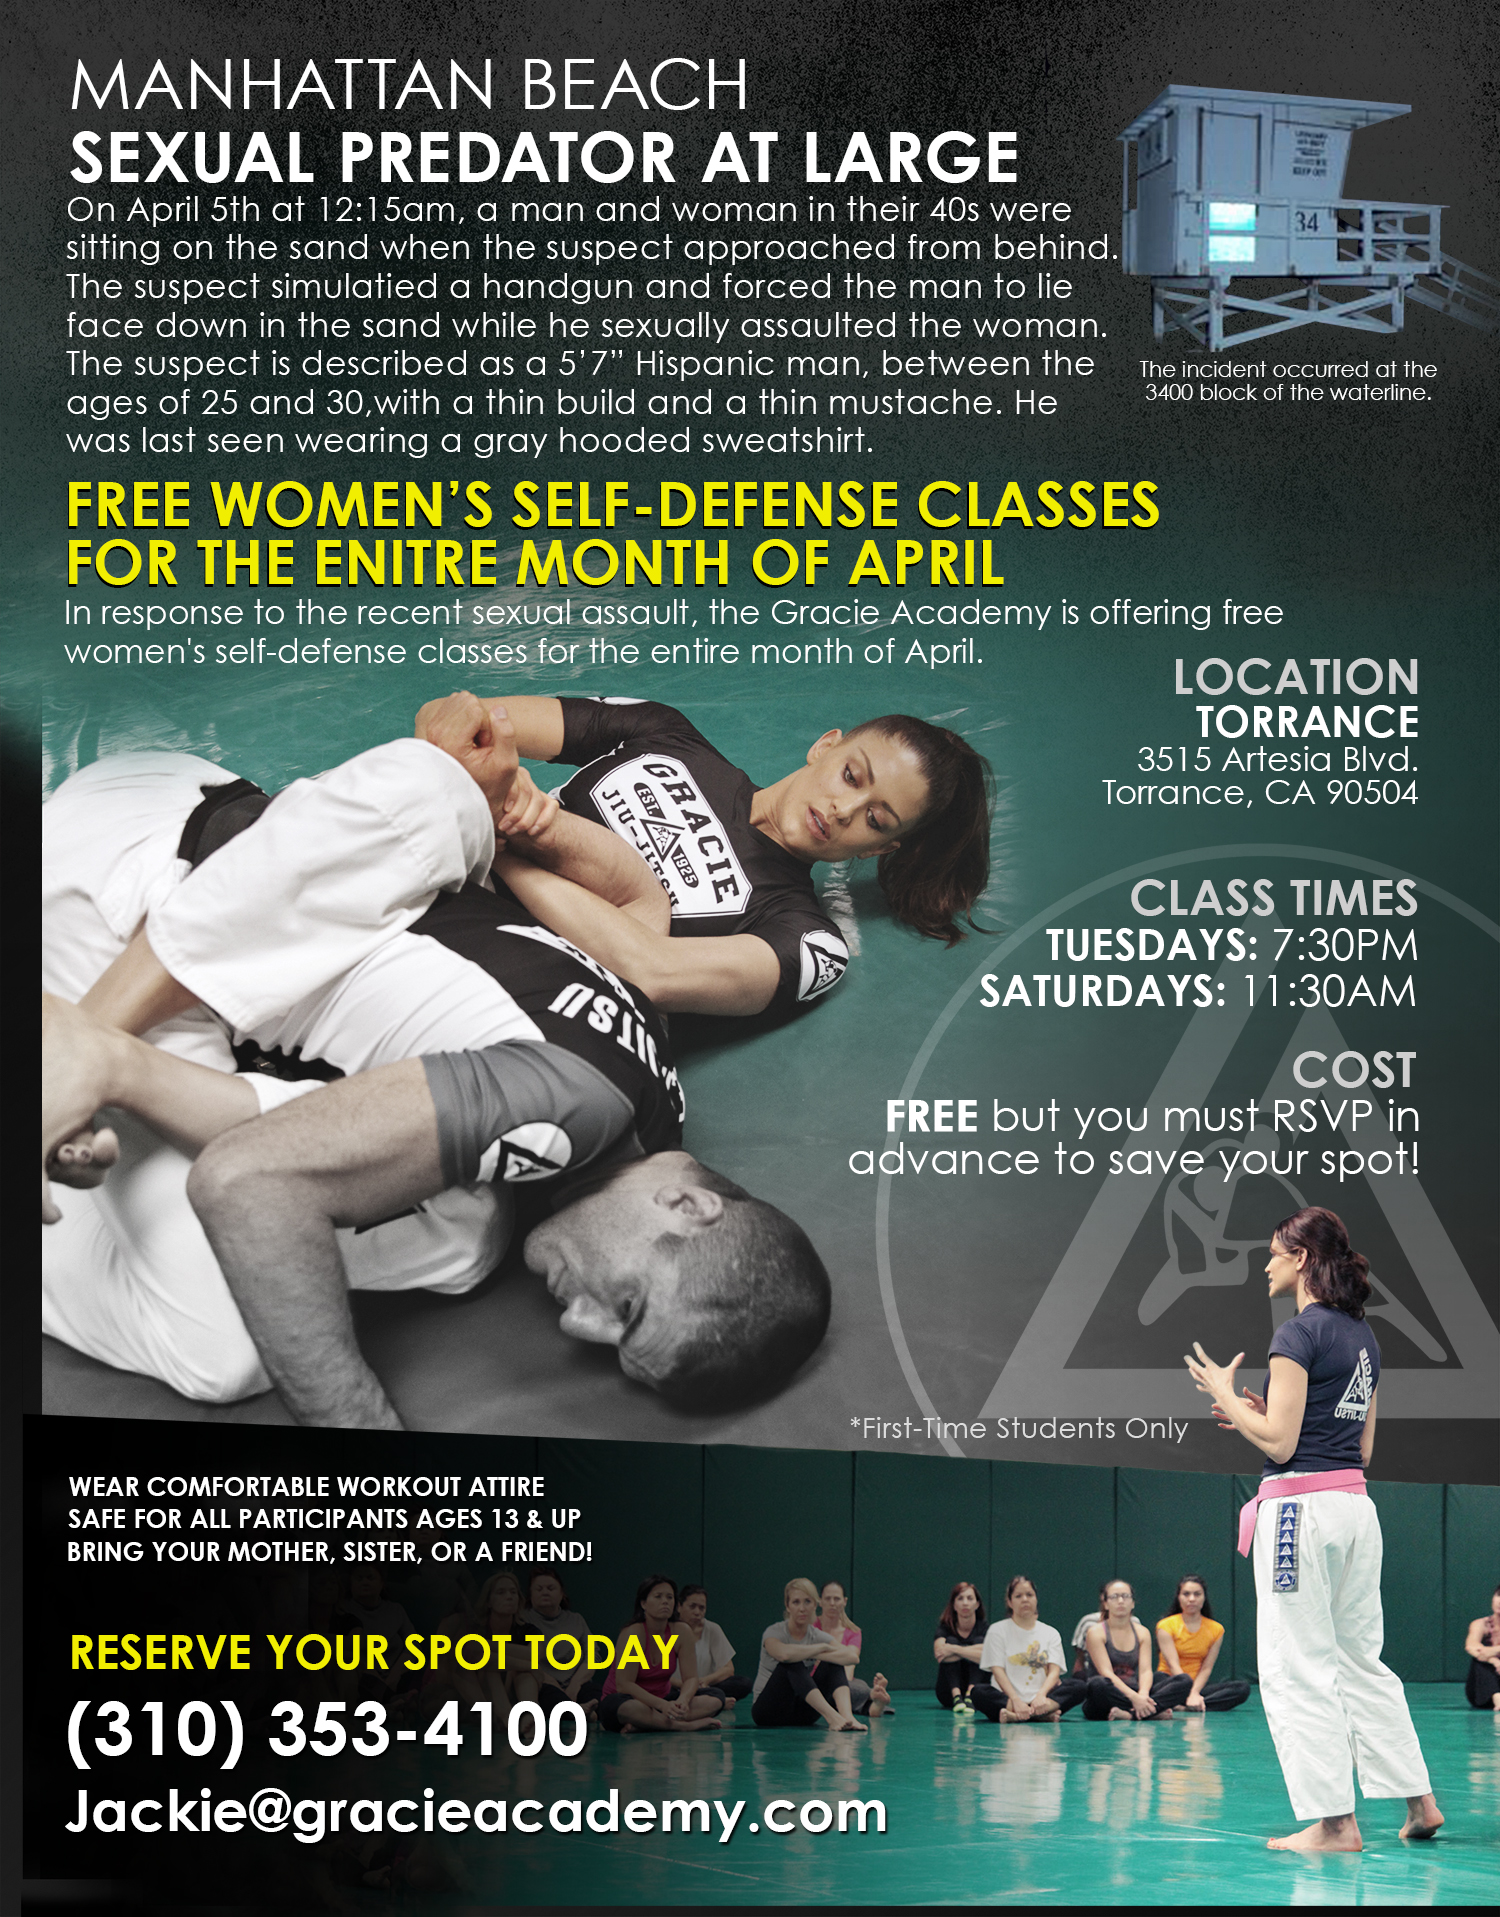 FREE Women Empowered Classes for the month of April